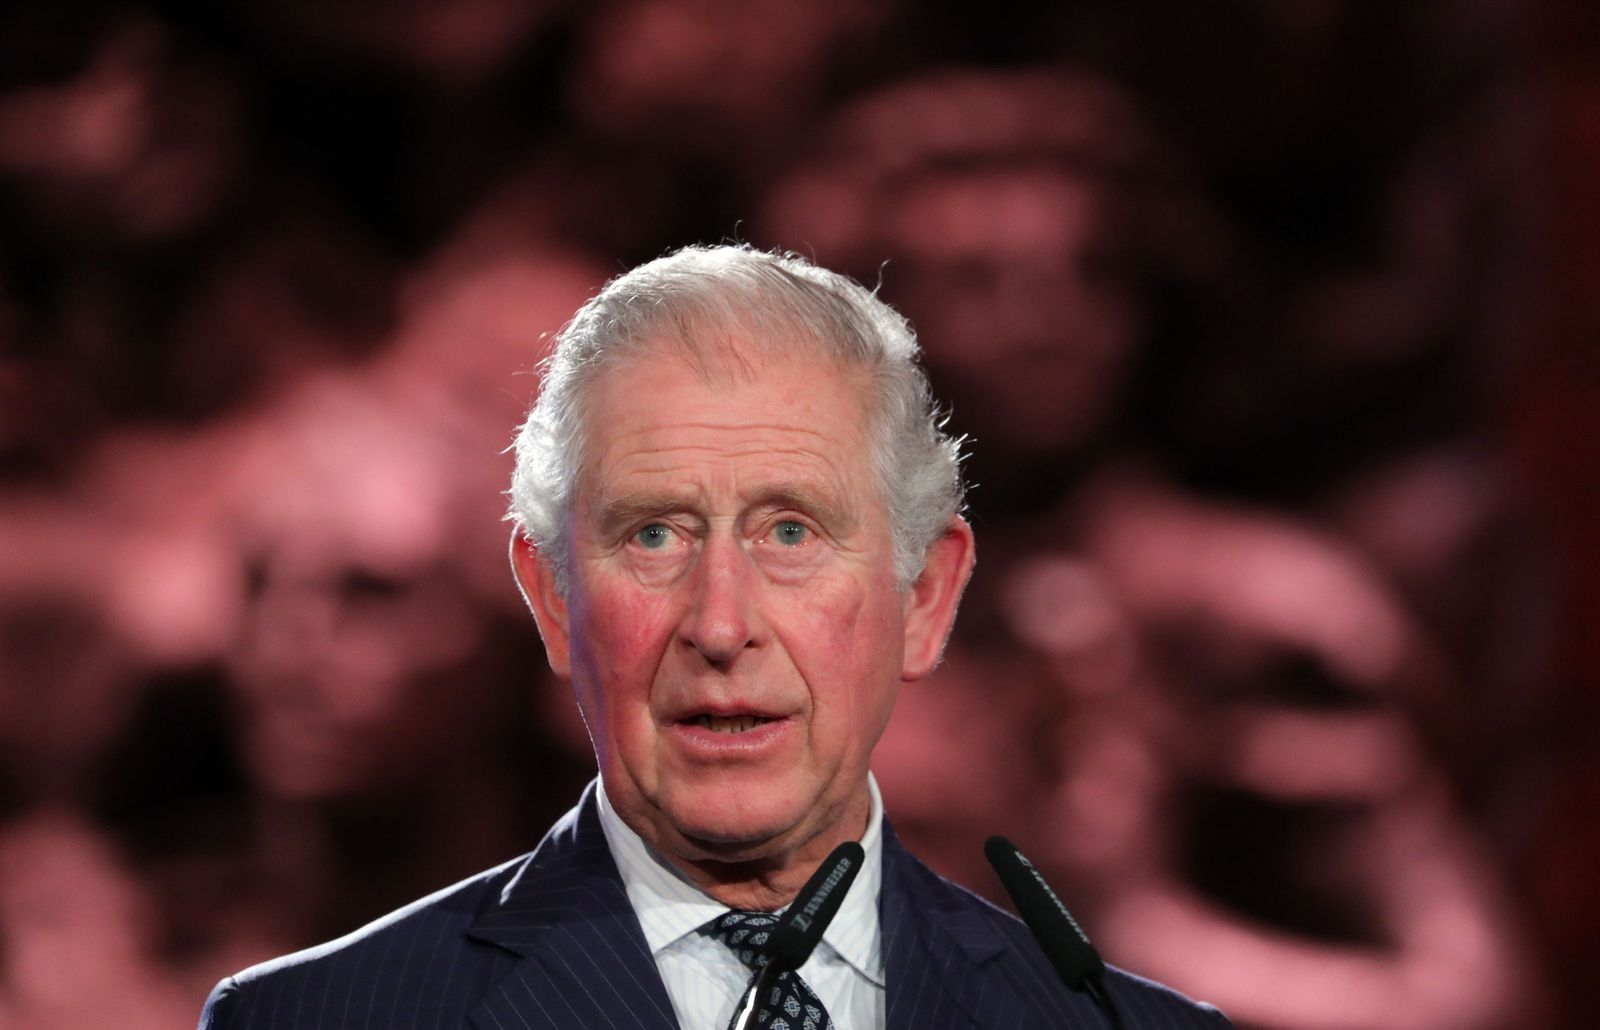 Prince Charles infected with coronavirus, Jerusalem, Israel - 23 Jan 2020